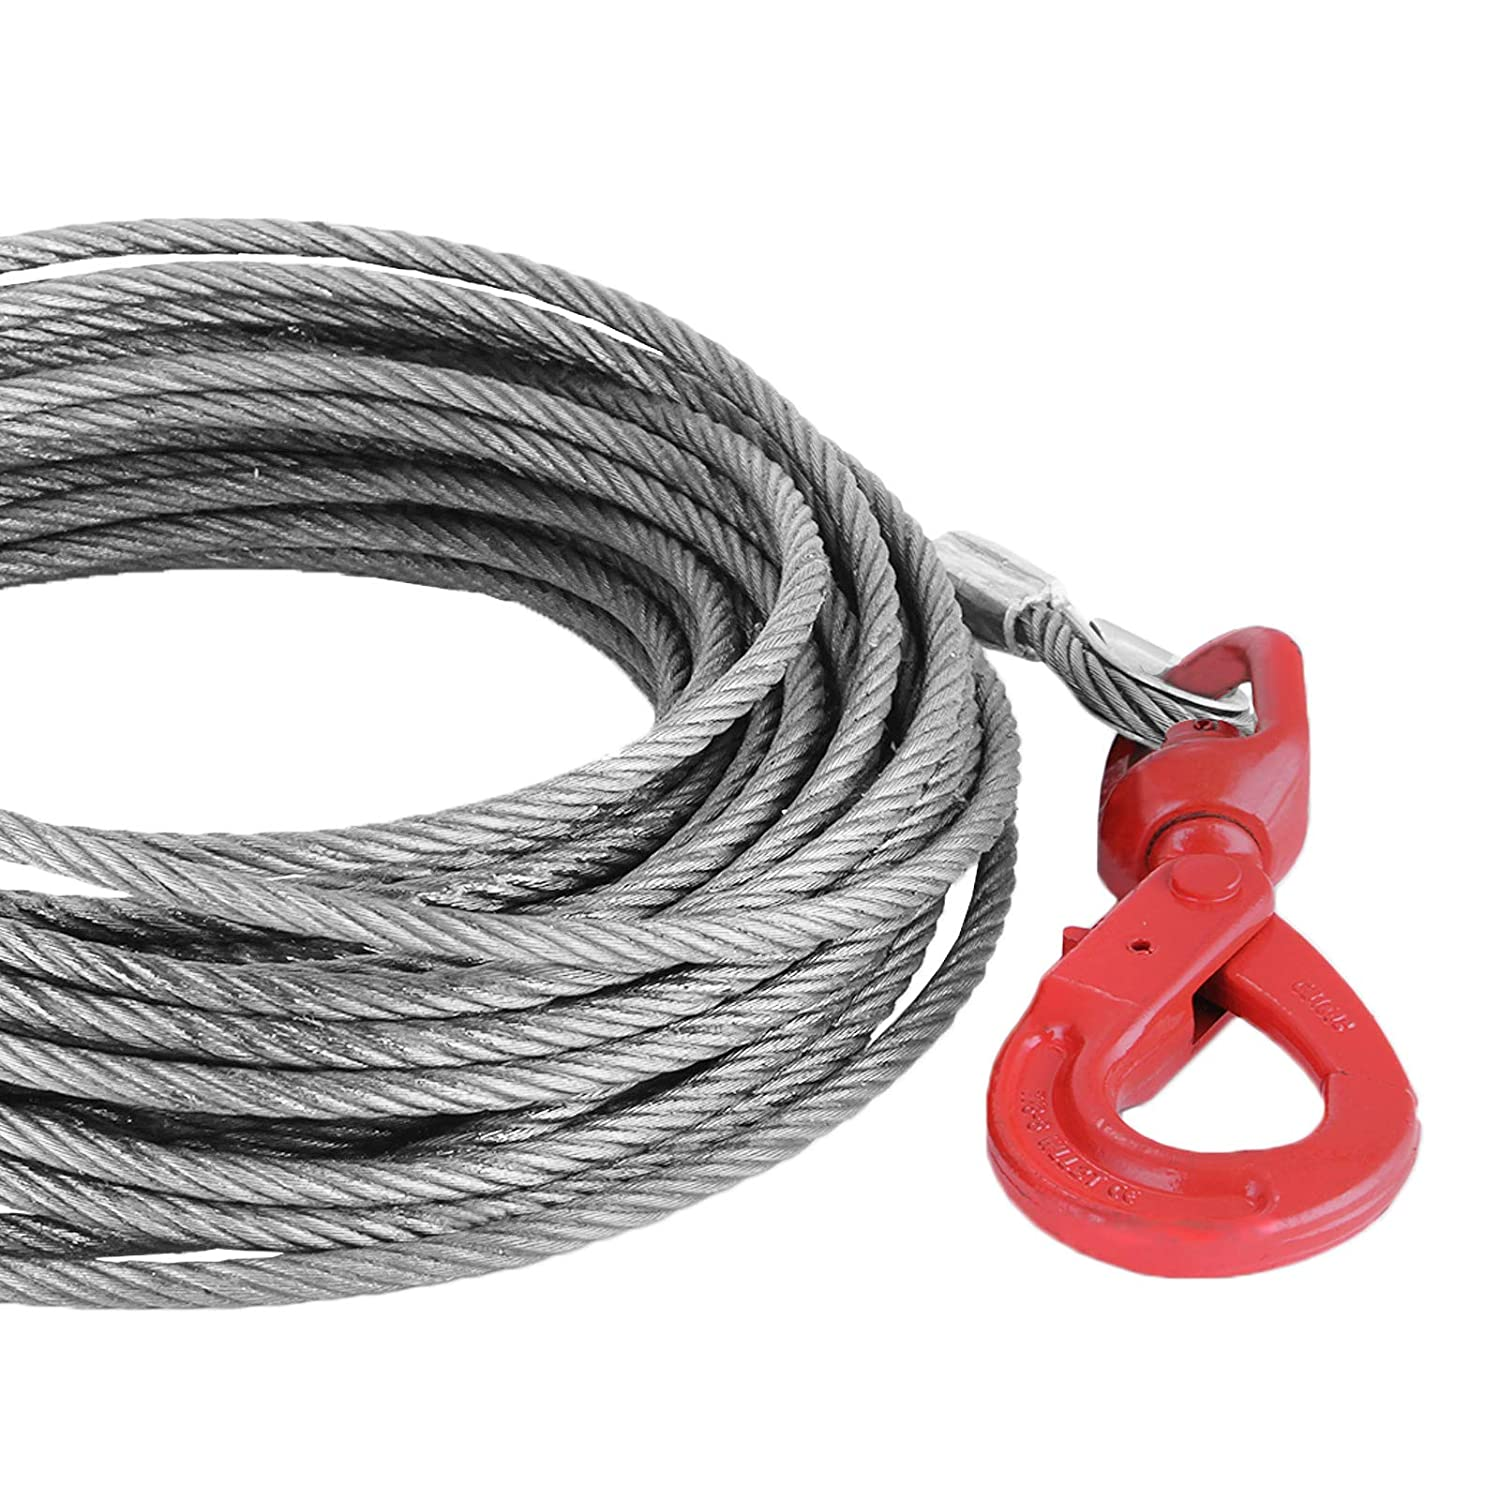 7//16 x 150 Mophorn Winch Cable 7//16 x 150 Replacement Wire Rope 4400LBS Fiber Core Self Locking Swivel Hook